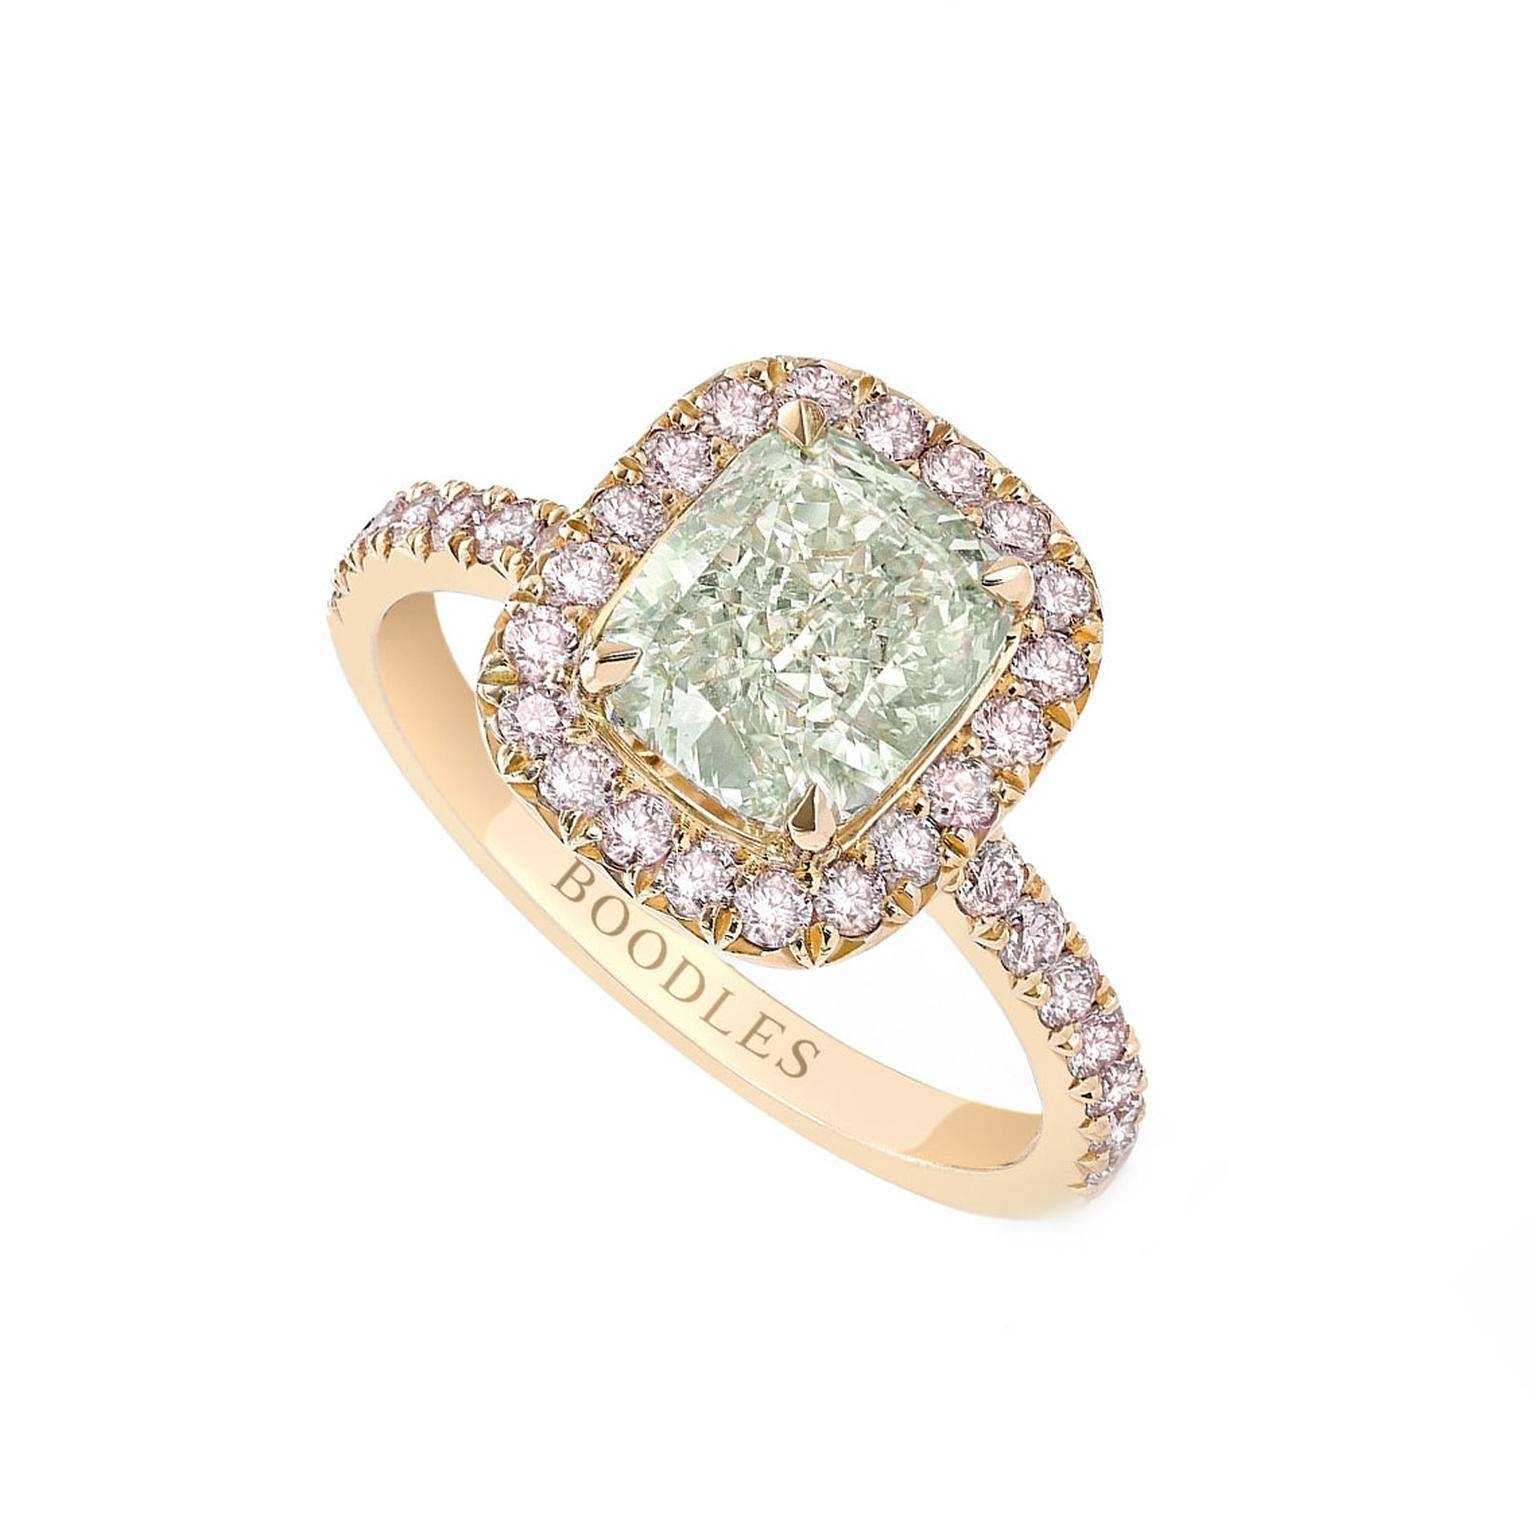 Vintage Pink And Green Diamond Ring | Boodles | The Jewellery Editor Regarding Colorful Diamond Engagement Rings (View 14 of 15)